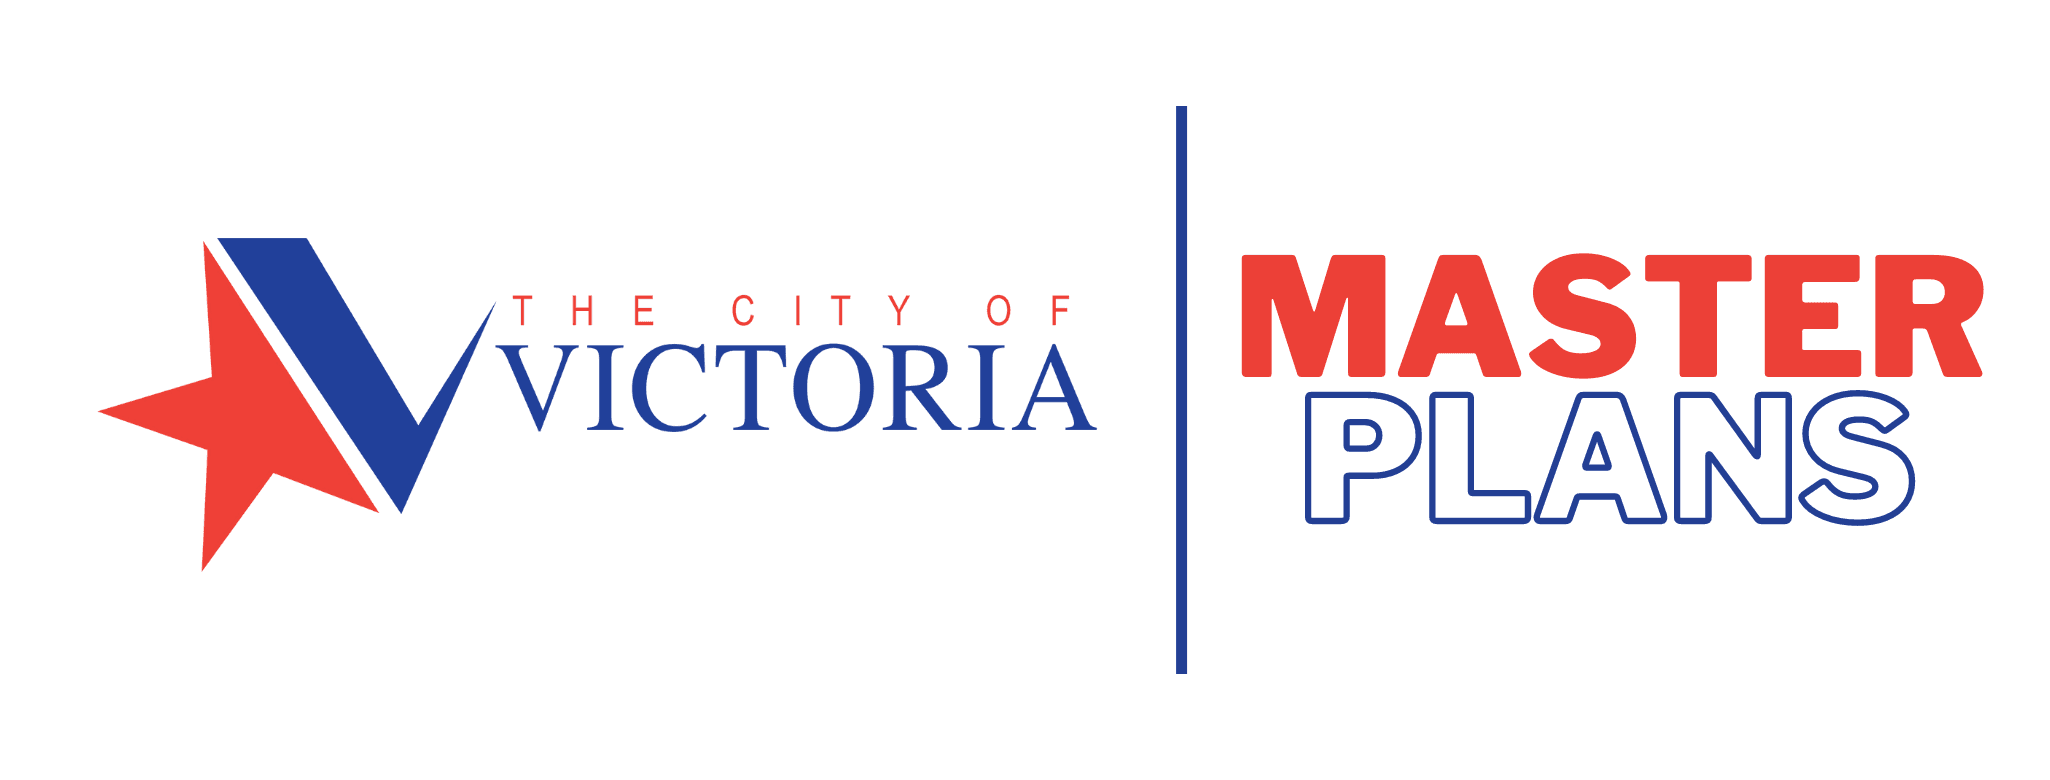 city of victoria master plans